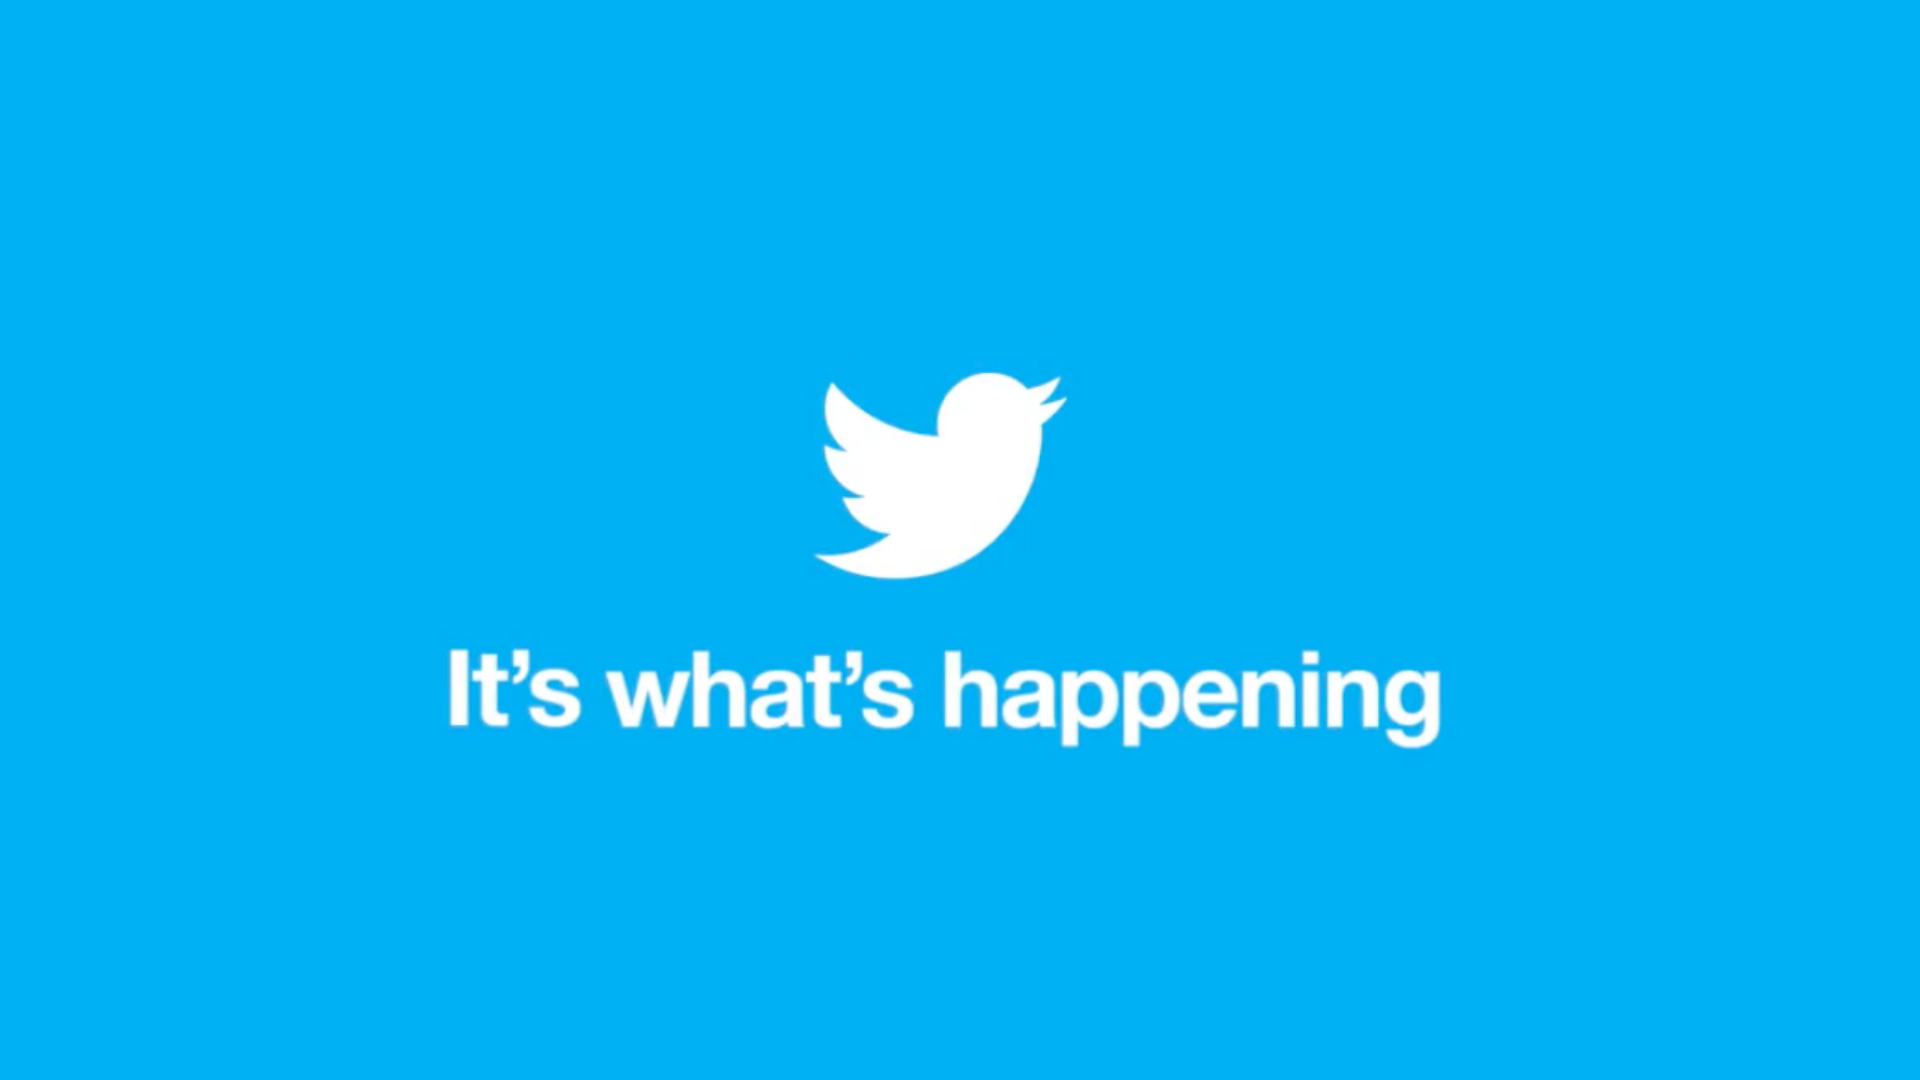 Twitter is down, social media users are reporting that the site is not working